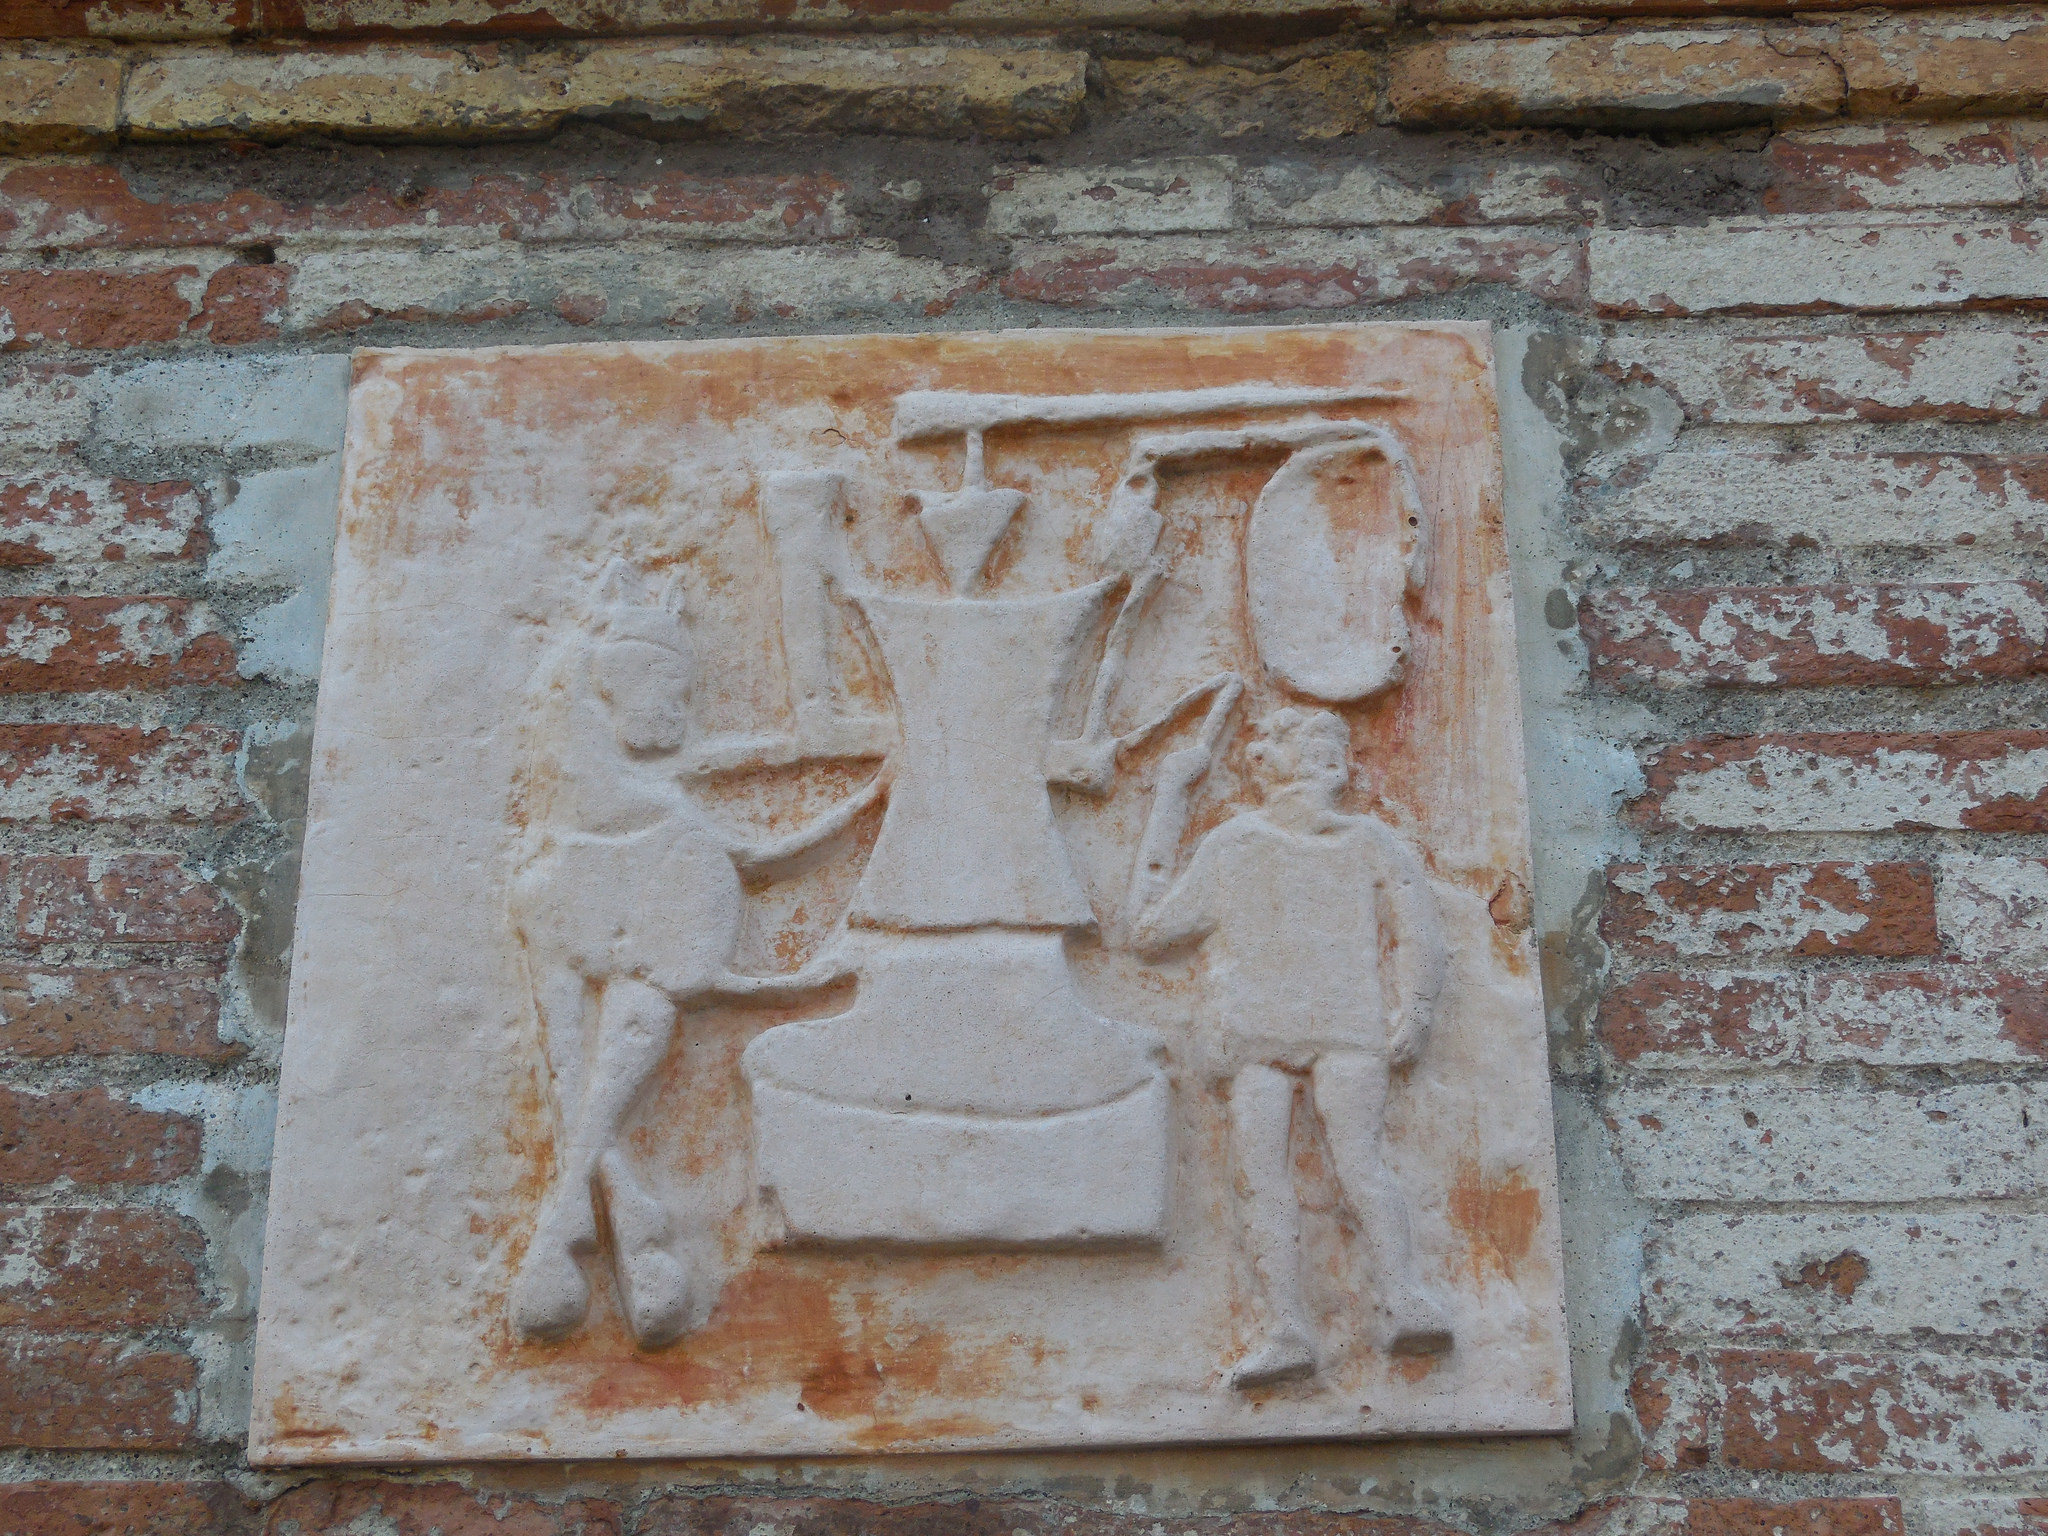 Images of a blacksmith's trade outside family tomb  (I  mage  via Flickr/ isafmt ,  CC BY 2.0 )